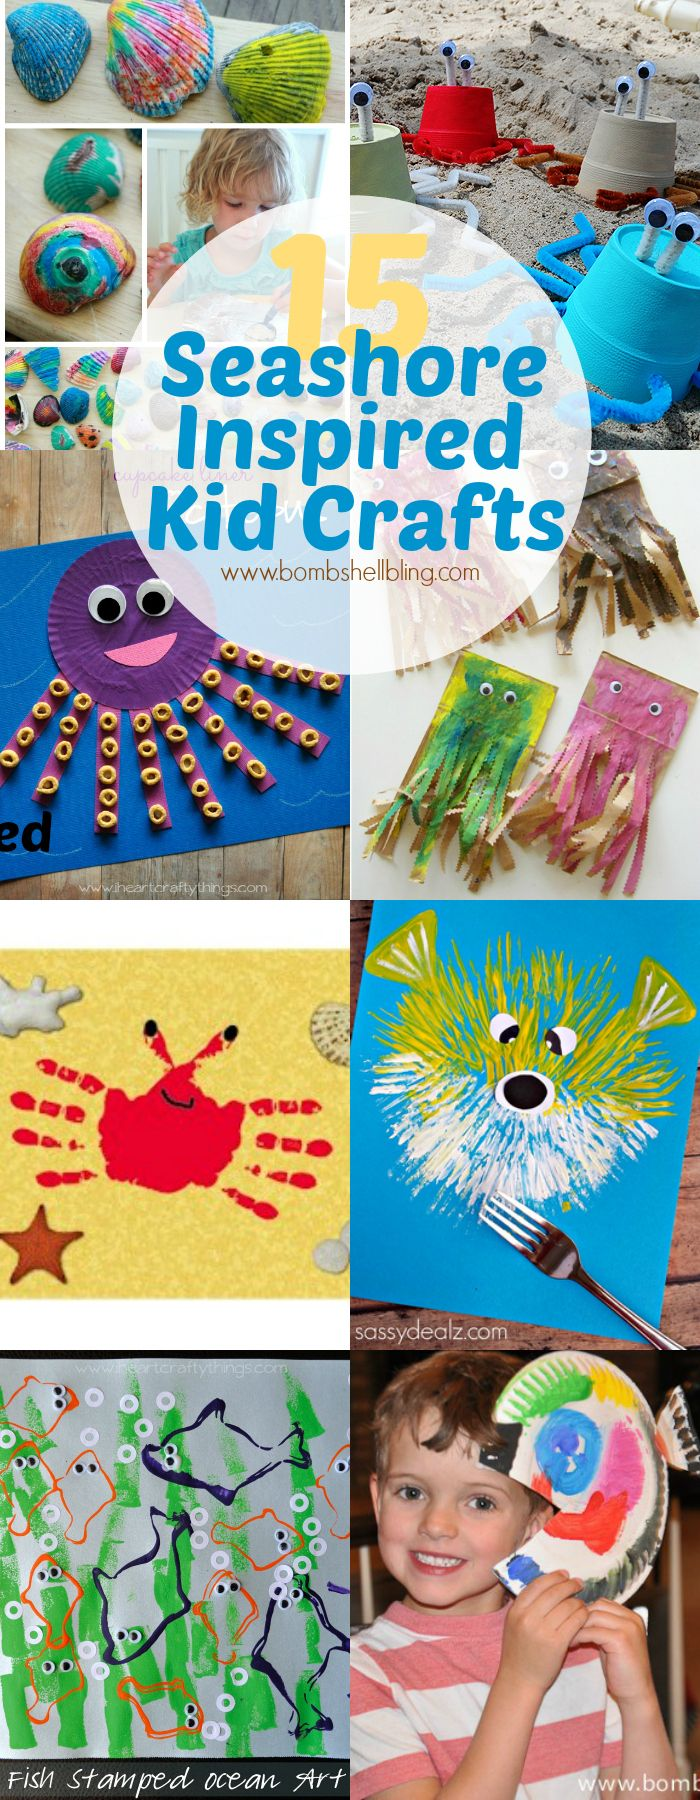 15 Seashore Inspired Kid Crafts - Perfect for summer!